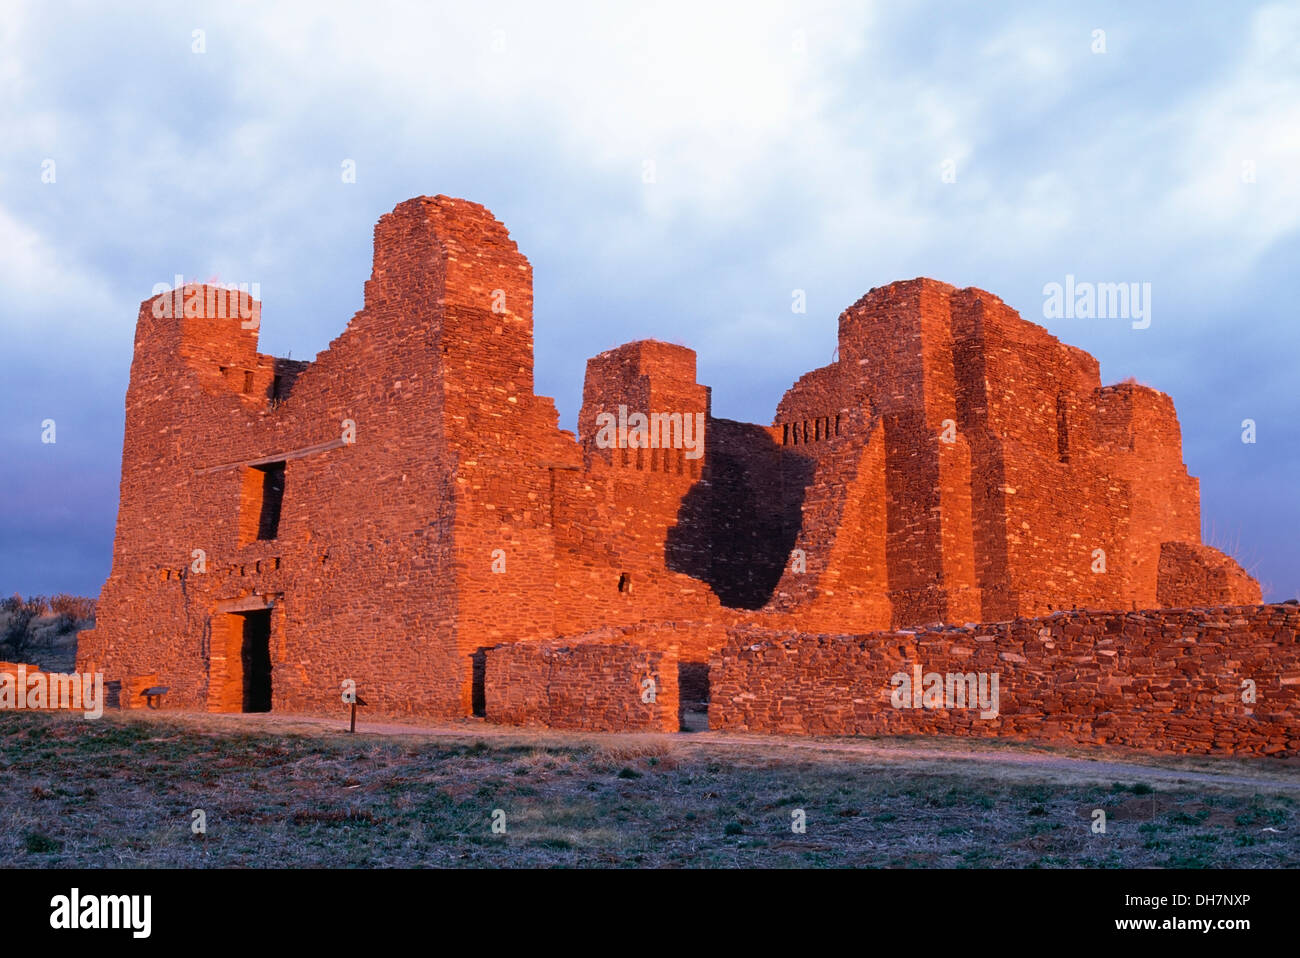 Church at Quarai Mission, Salinas Pueblo Missions National Monument, New Mexico USA - Stock Image